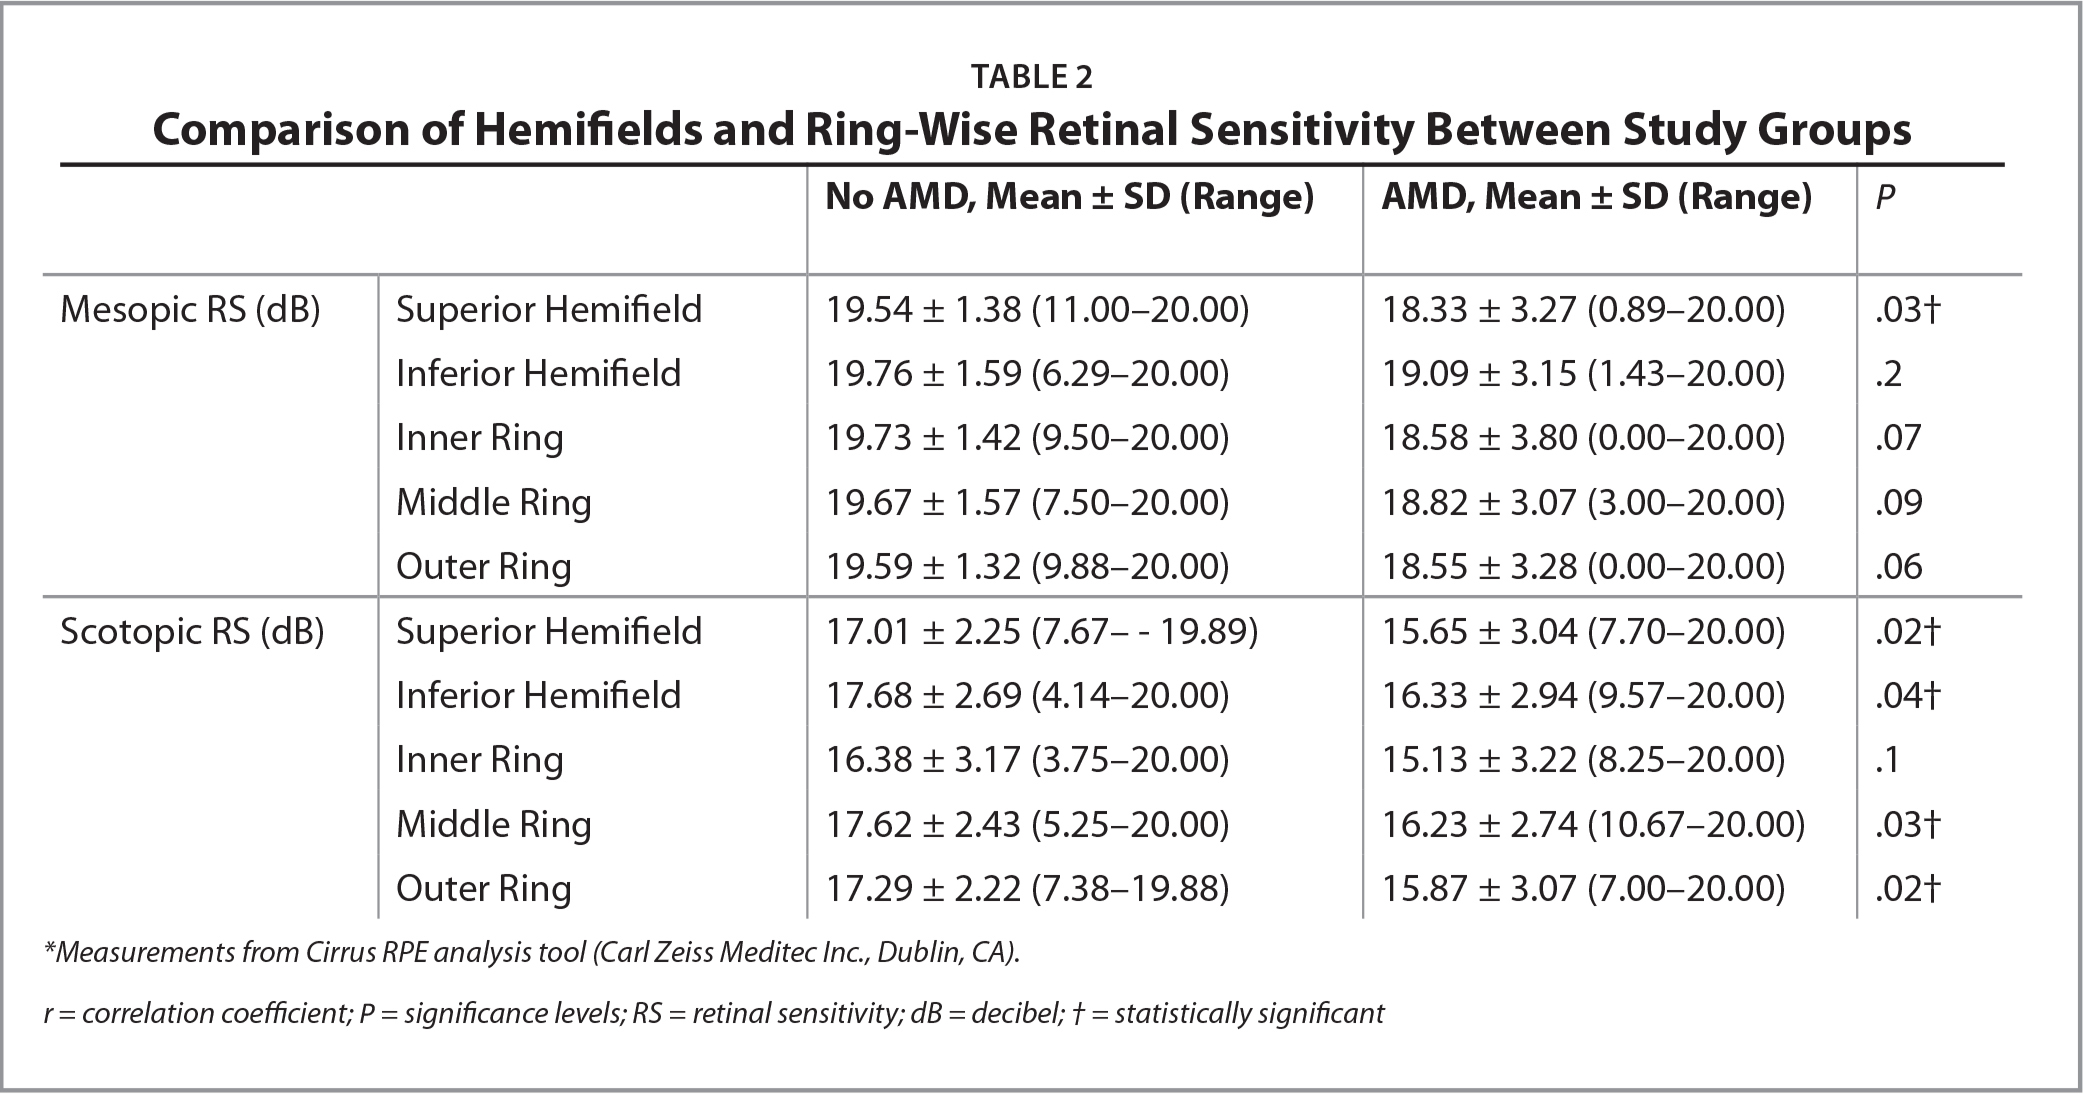 Comparison of Hemifields and Ring-Wise Retinal Sensitivity Between Study Groups